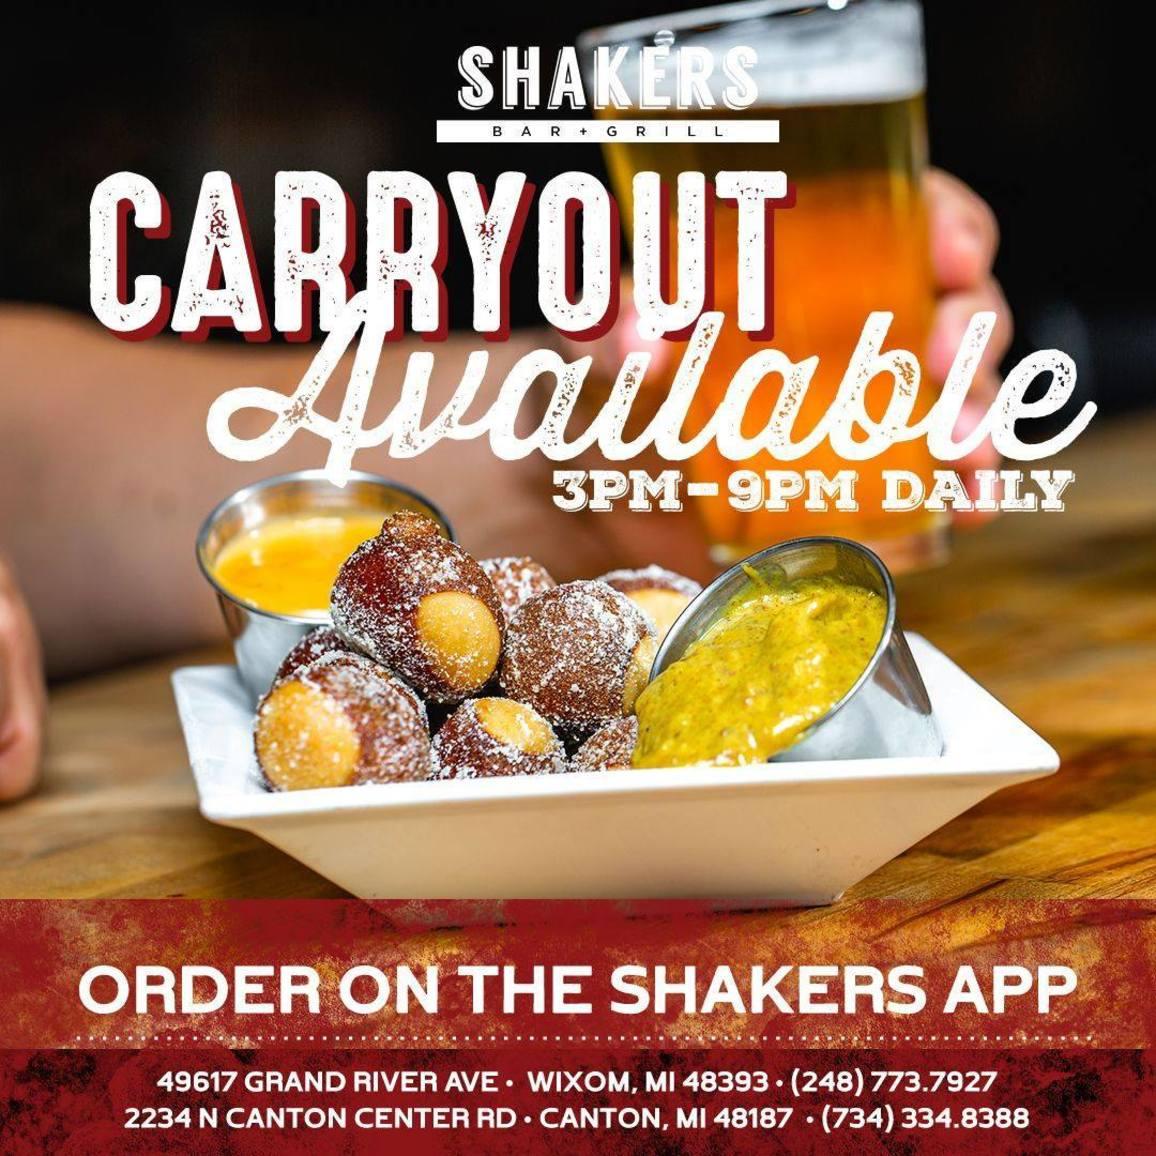 Order Carryout on our Shakers App!